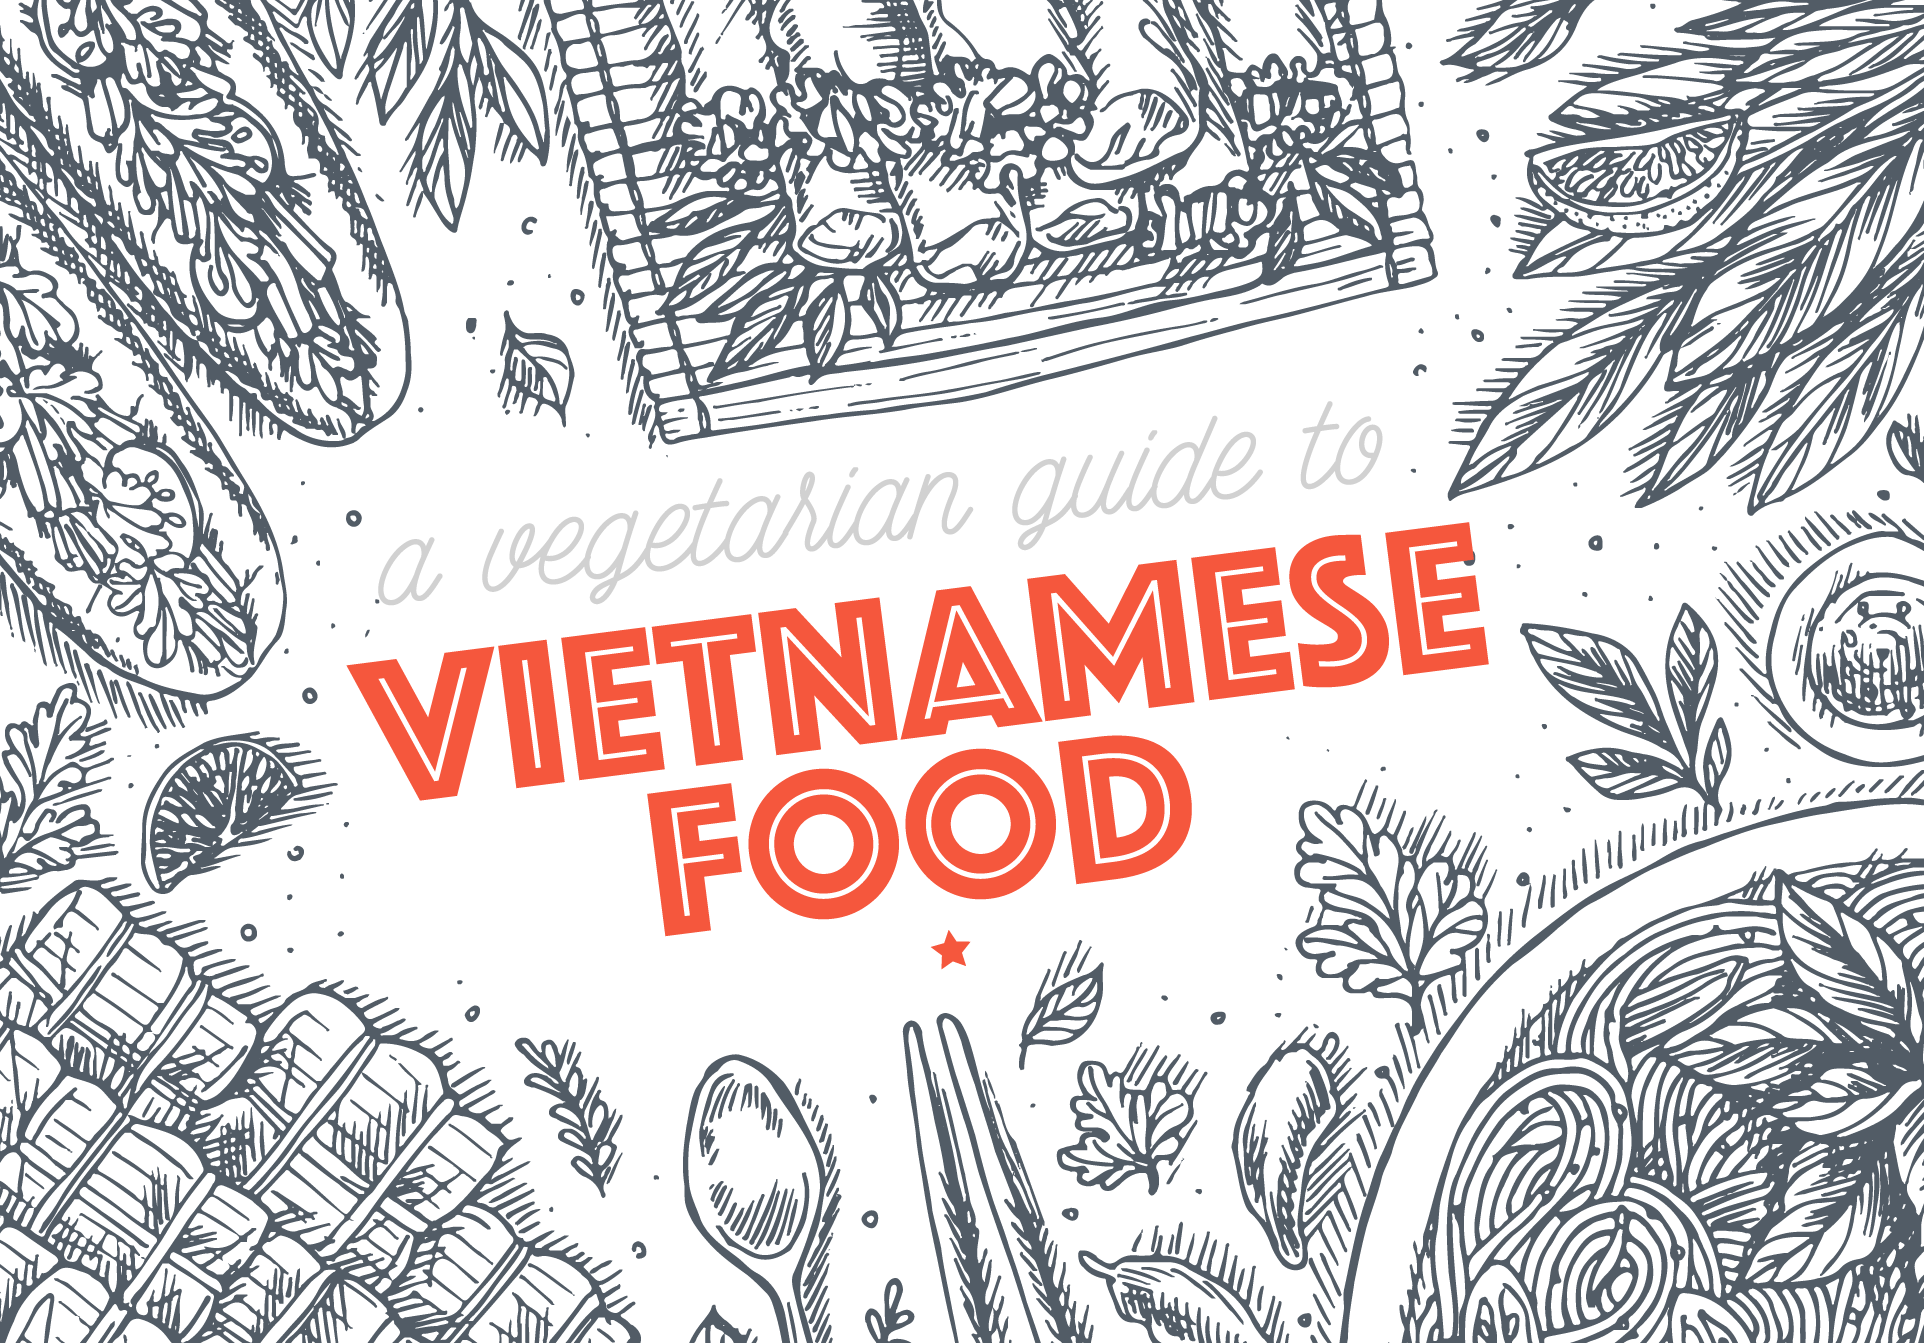 A Vegetarian Guide to Vietnamese Food - The Next Somewhere